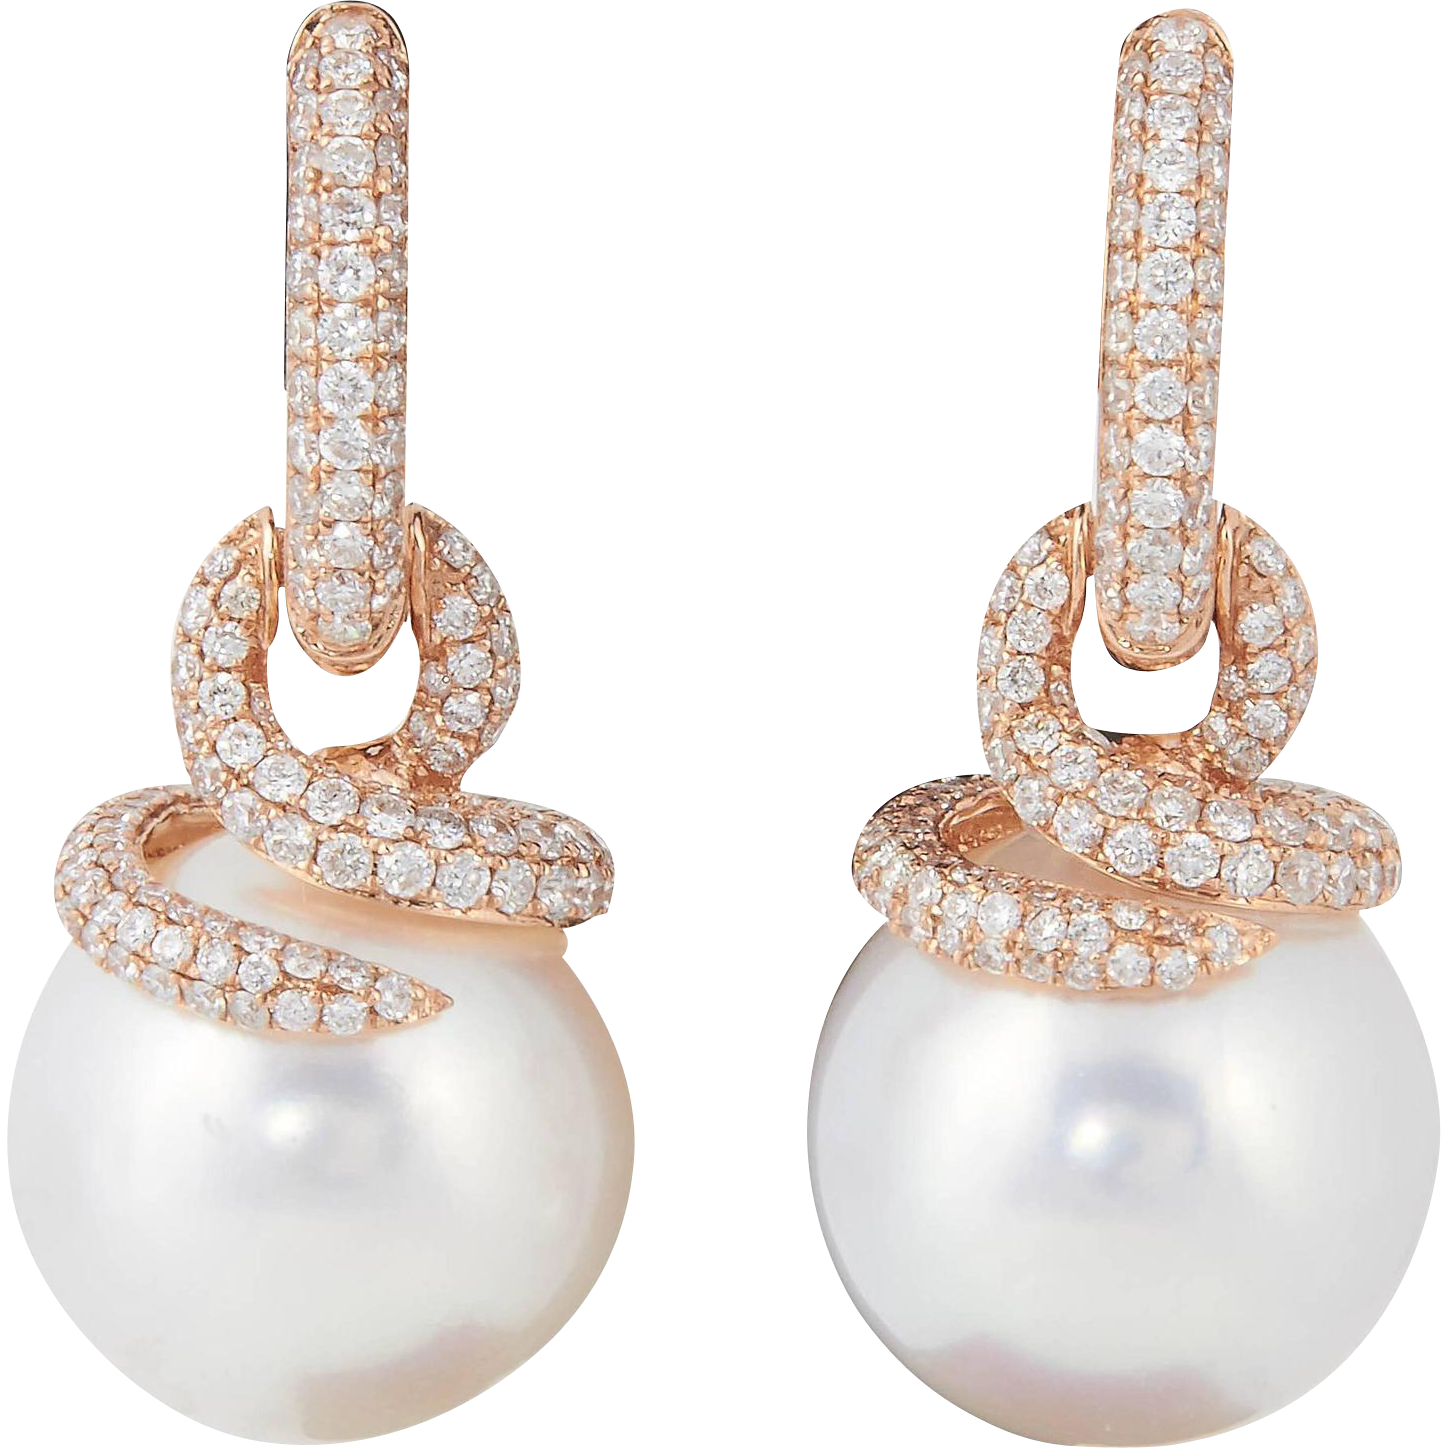 South Sea Pearl and Diamond Earring from prince dia inc on RubyLUX